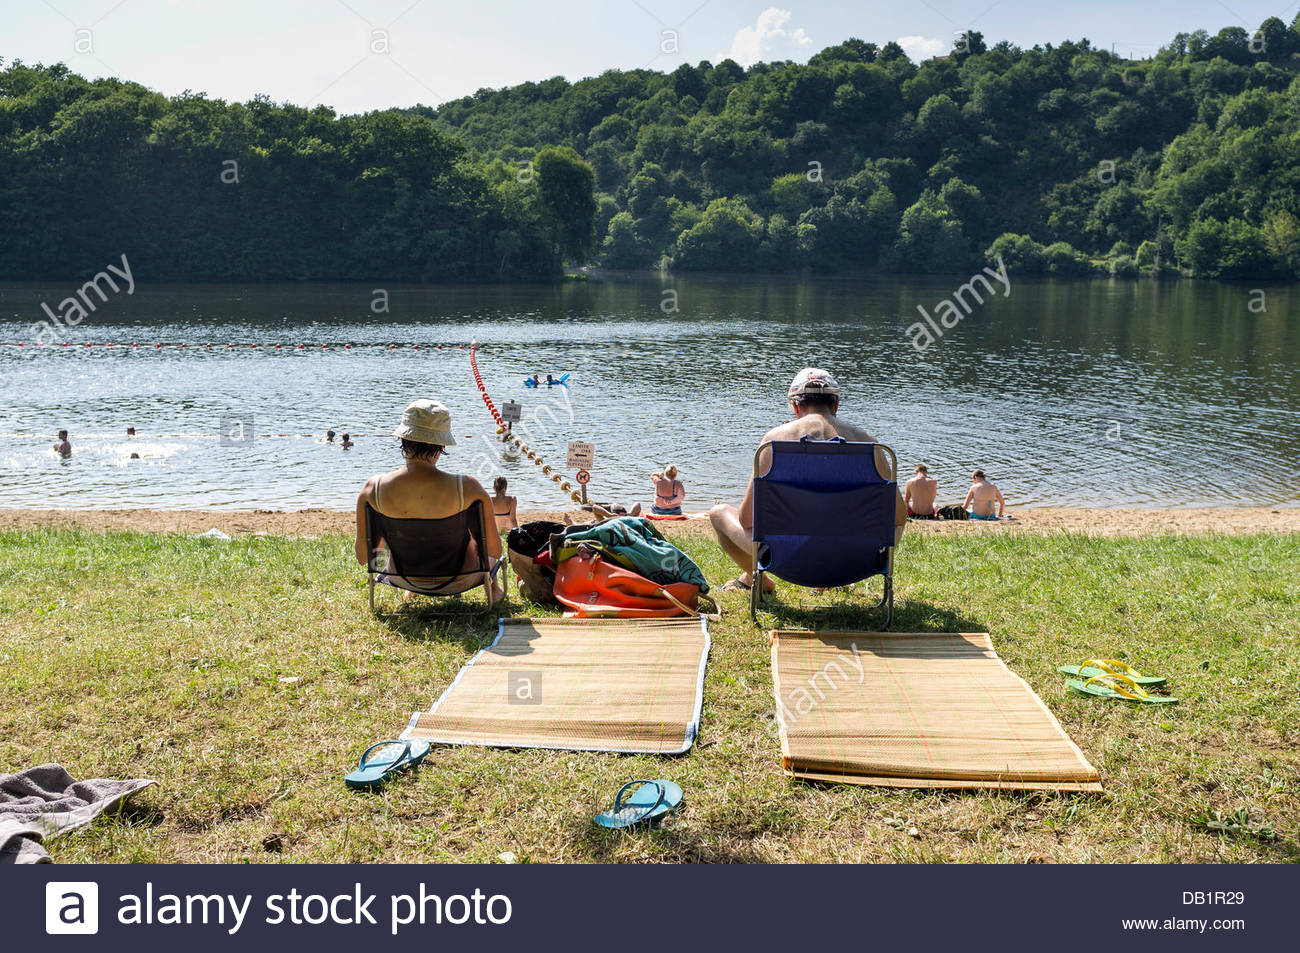 Le Bourg-d'Hem, Limousin, France. 22nd July, 2013. People sunbathing at a beach on the Creuse river. Temperatures - Stock Image